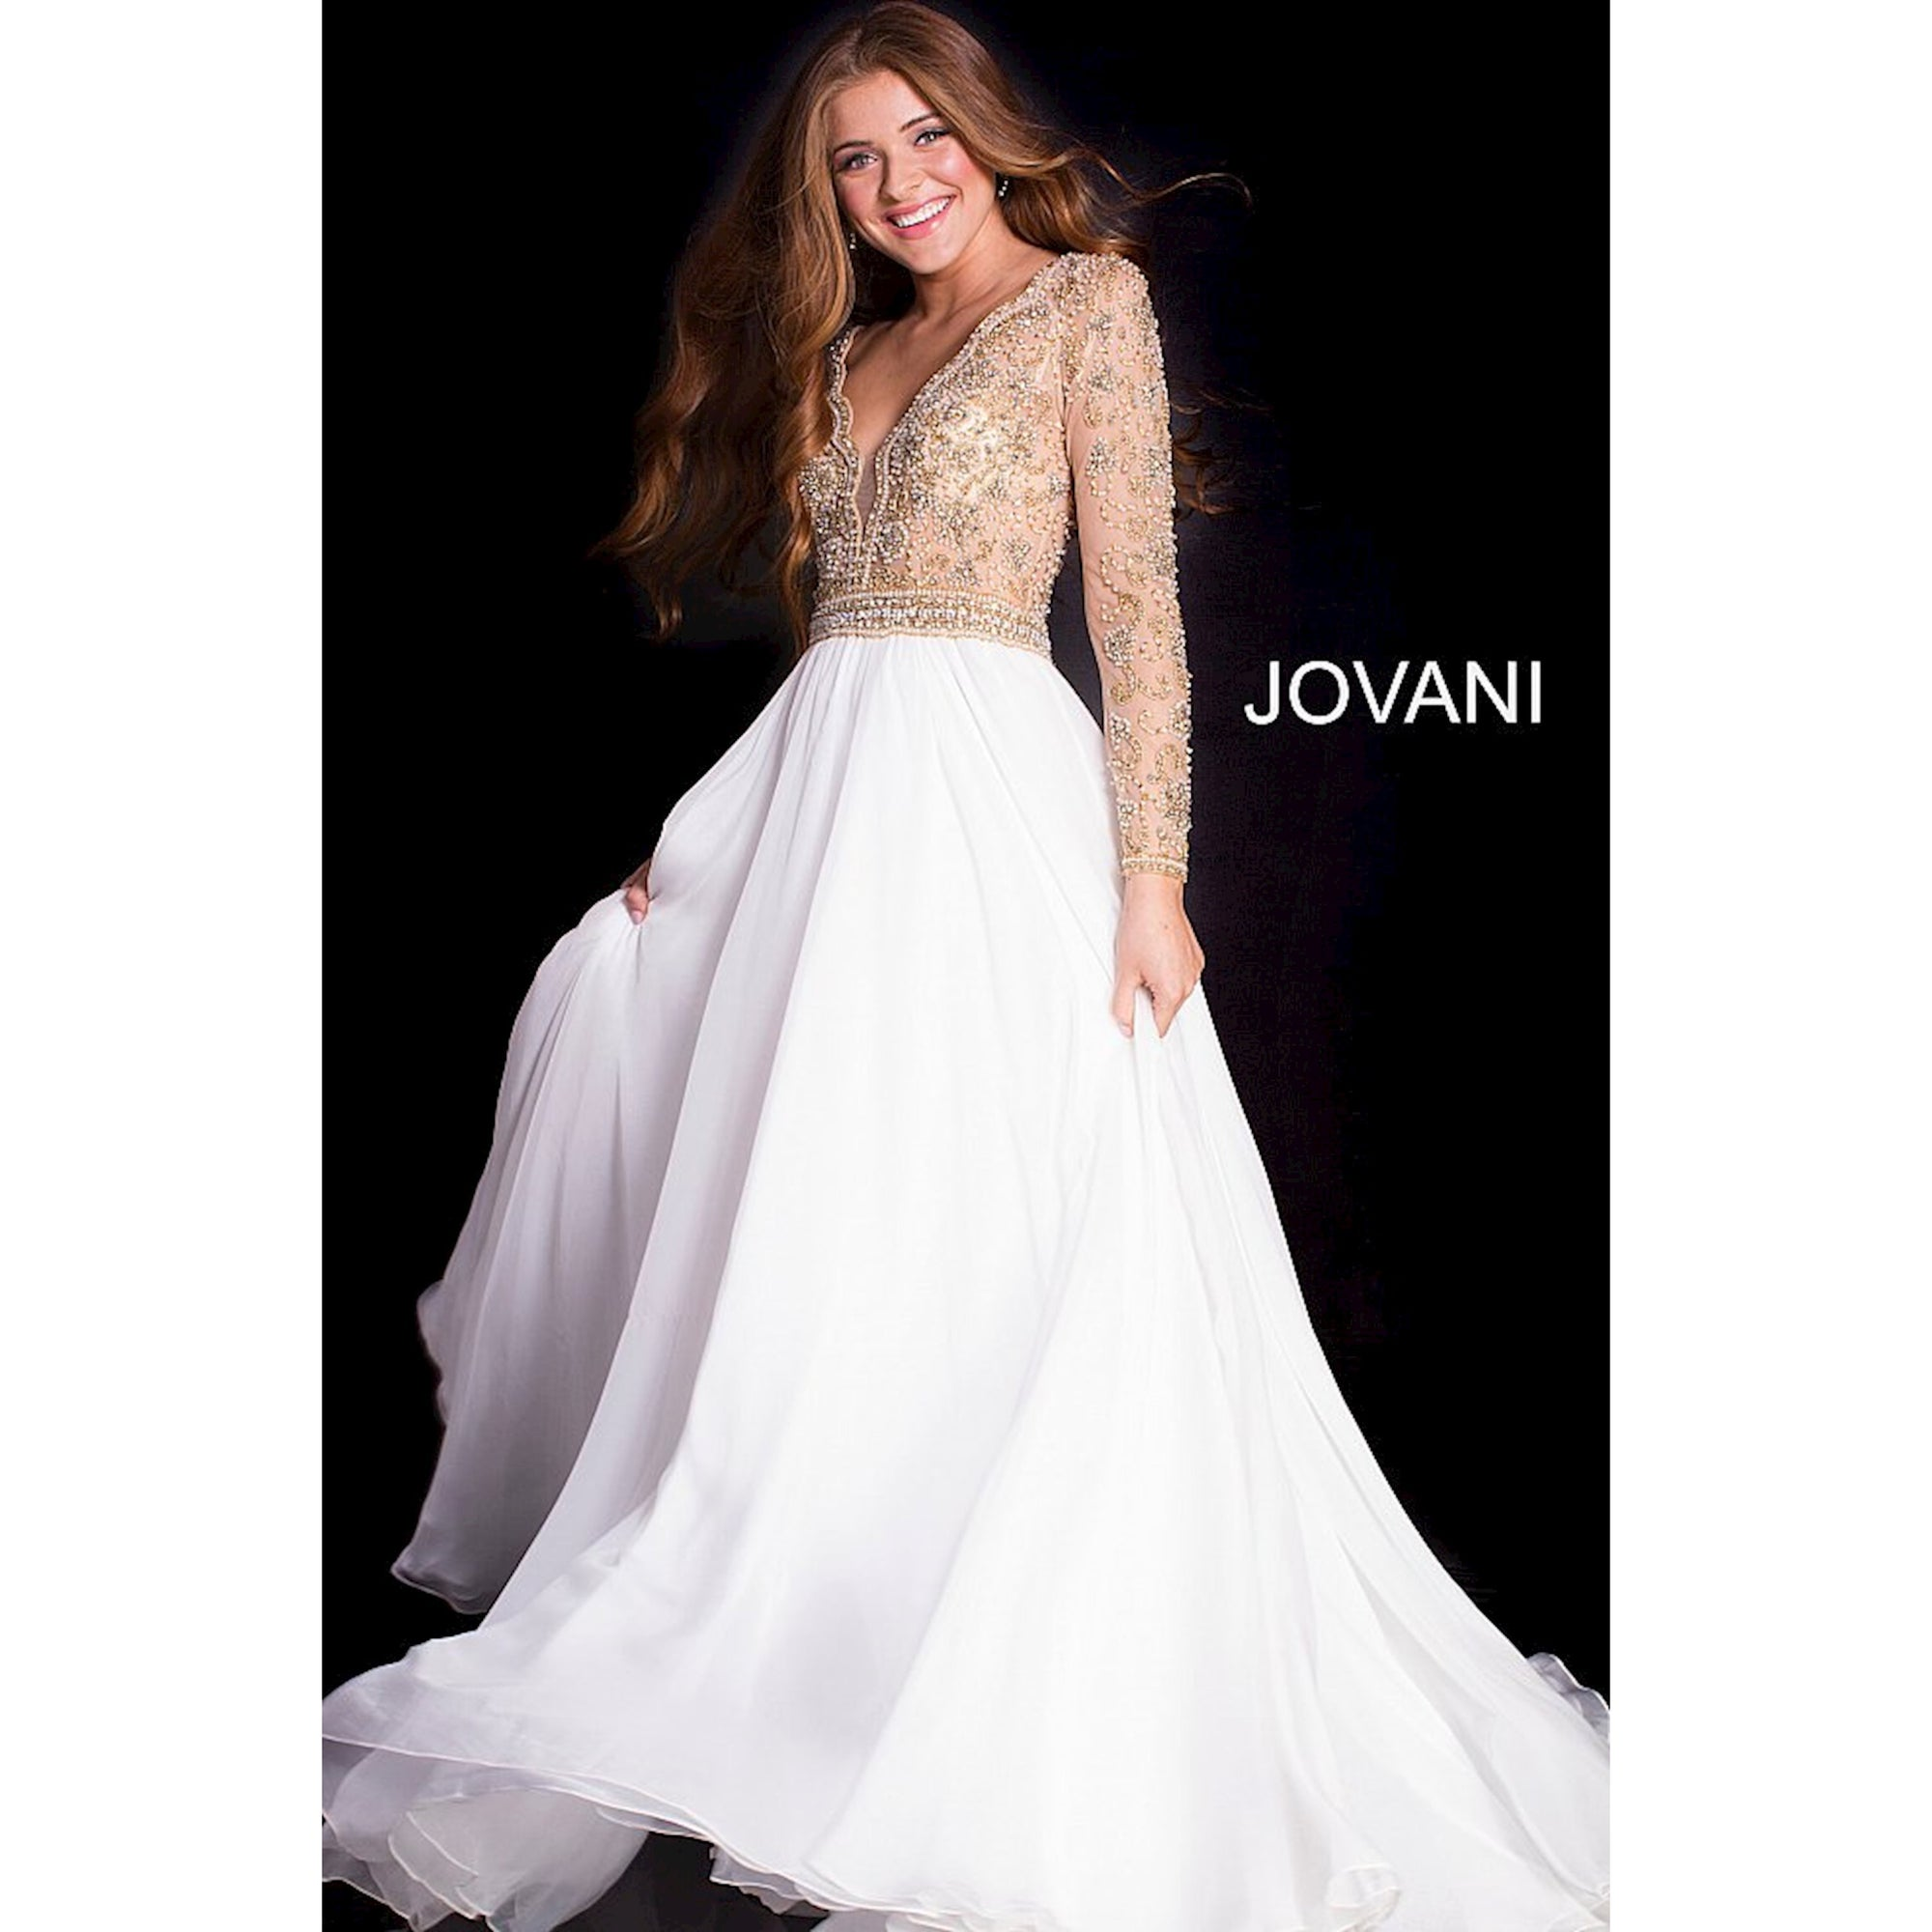 55207- Jovani Gown